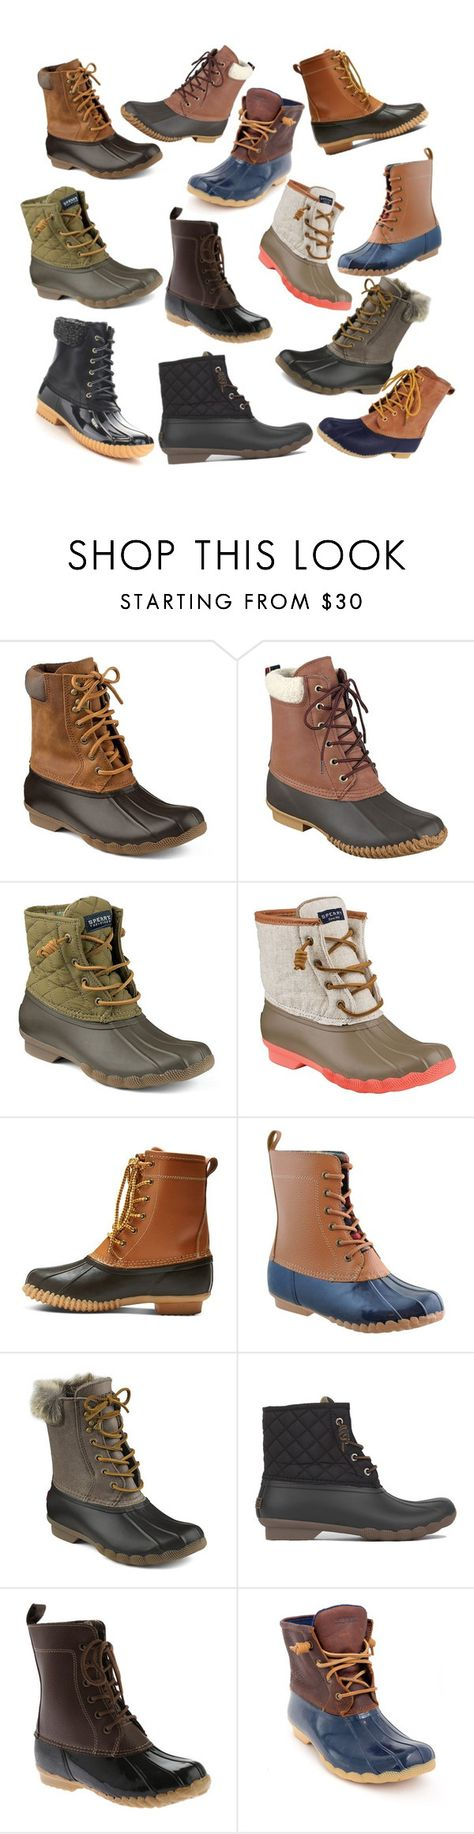 """""""Duck Boots!"""" by olivianaz ❤ liked on Polyvore featuring Sperry Top-Sider, Tommy Hilfiger, Merona, Sporto and Nature Breeze"""